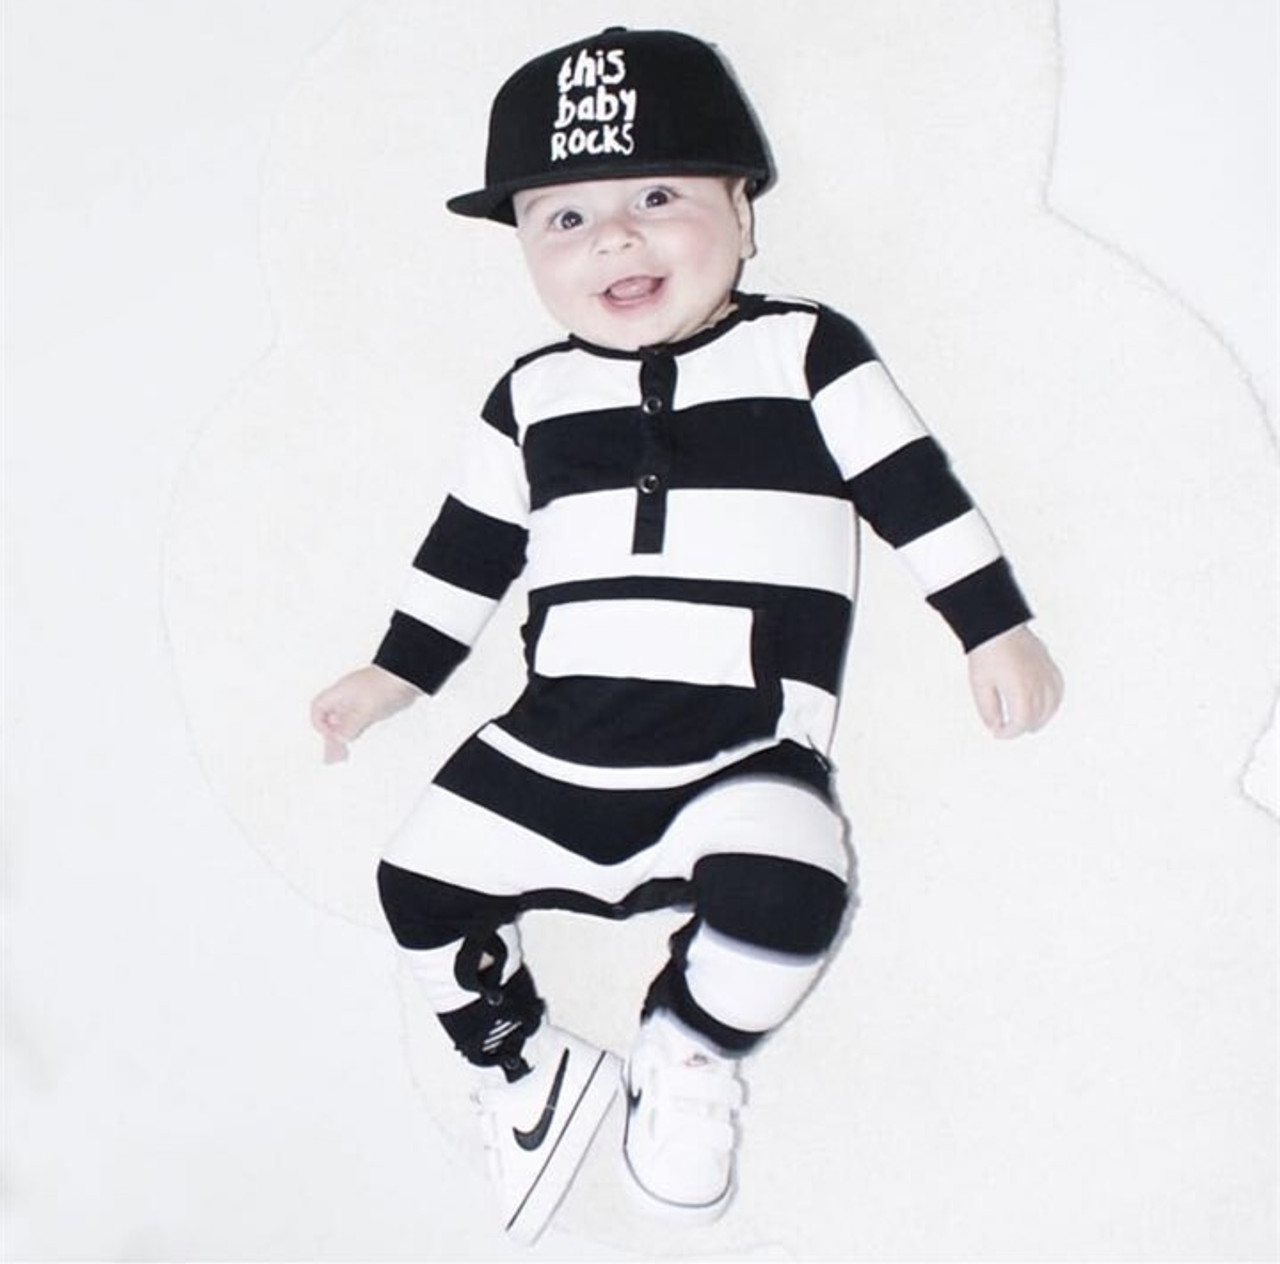 Newborn Infant Outfits High Quality Baby Rompers Spring And Autunm Baby Boy Clothes Newborn Baby Girl Jumpsuit Kids Clothing Infant Wear